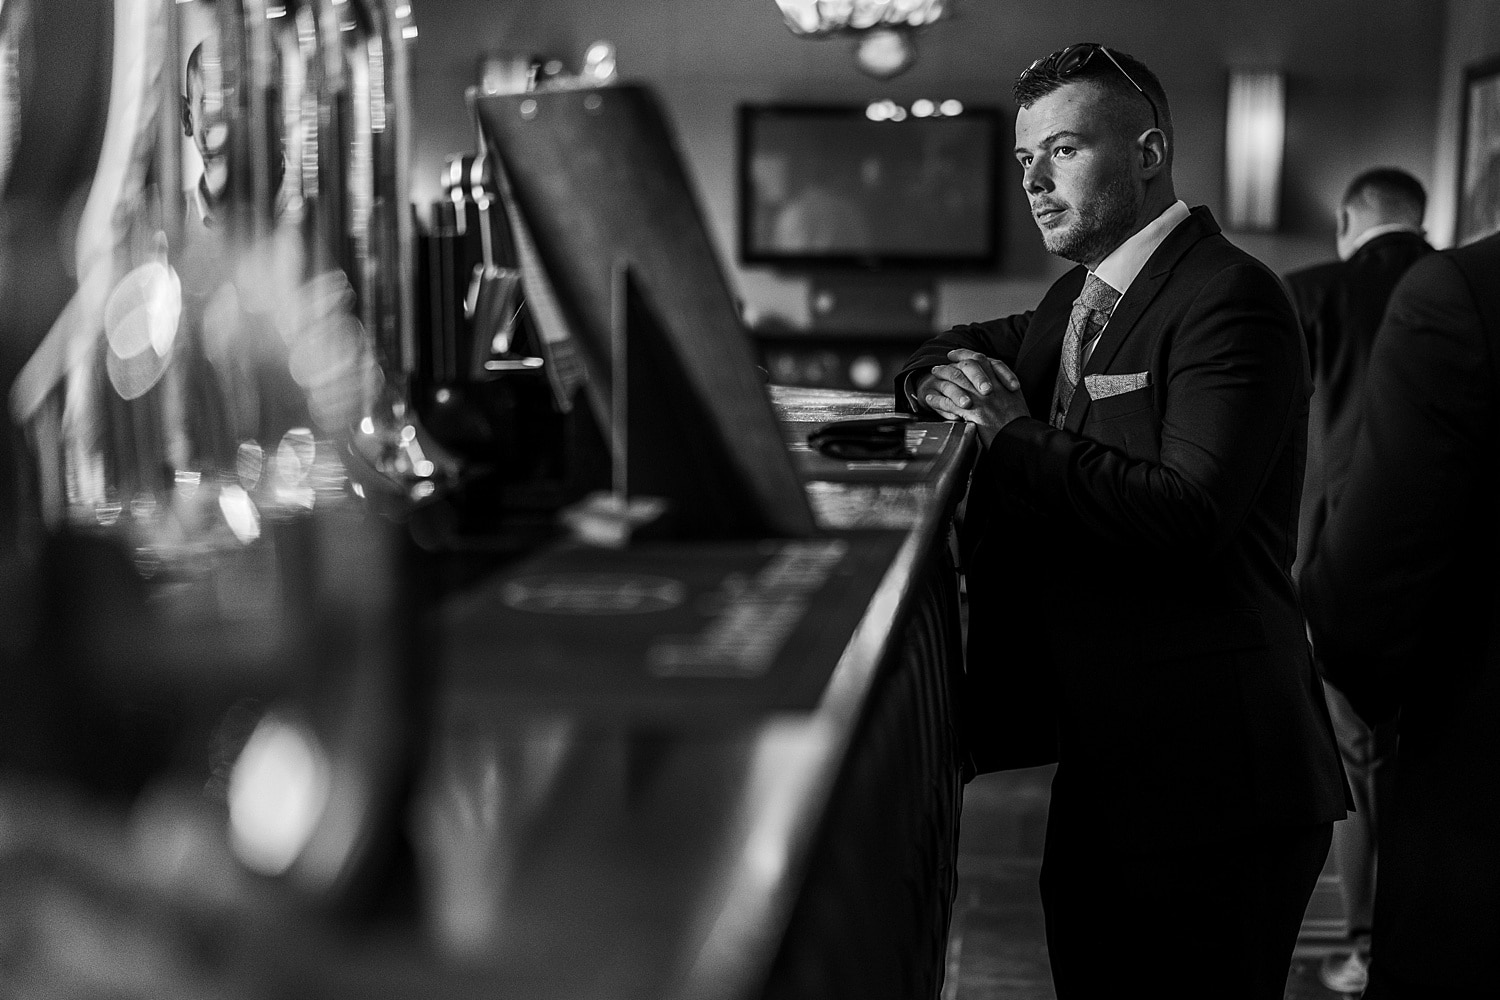 Groom waiting at the bar